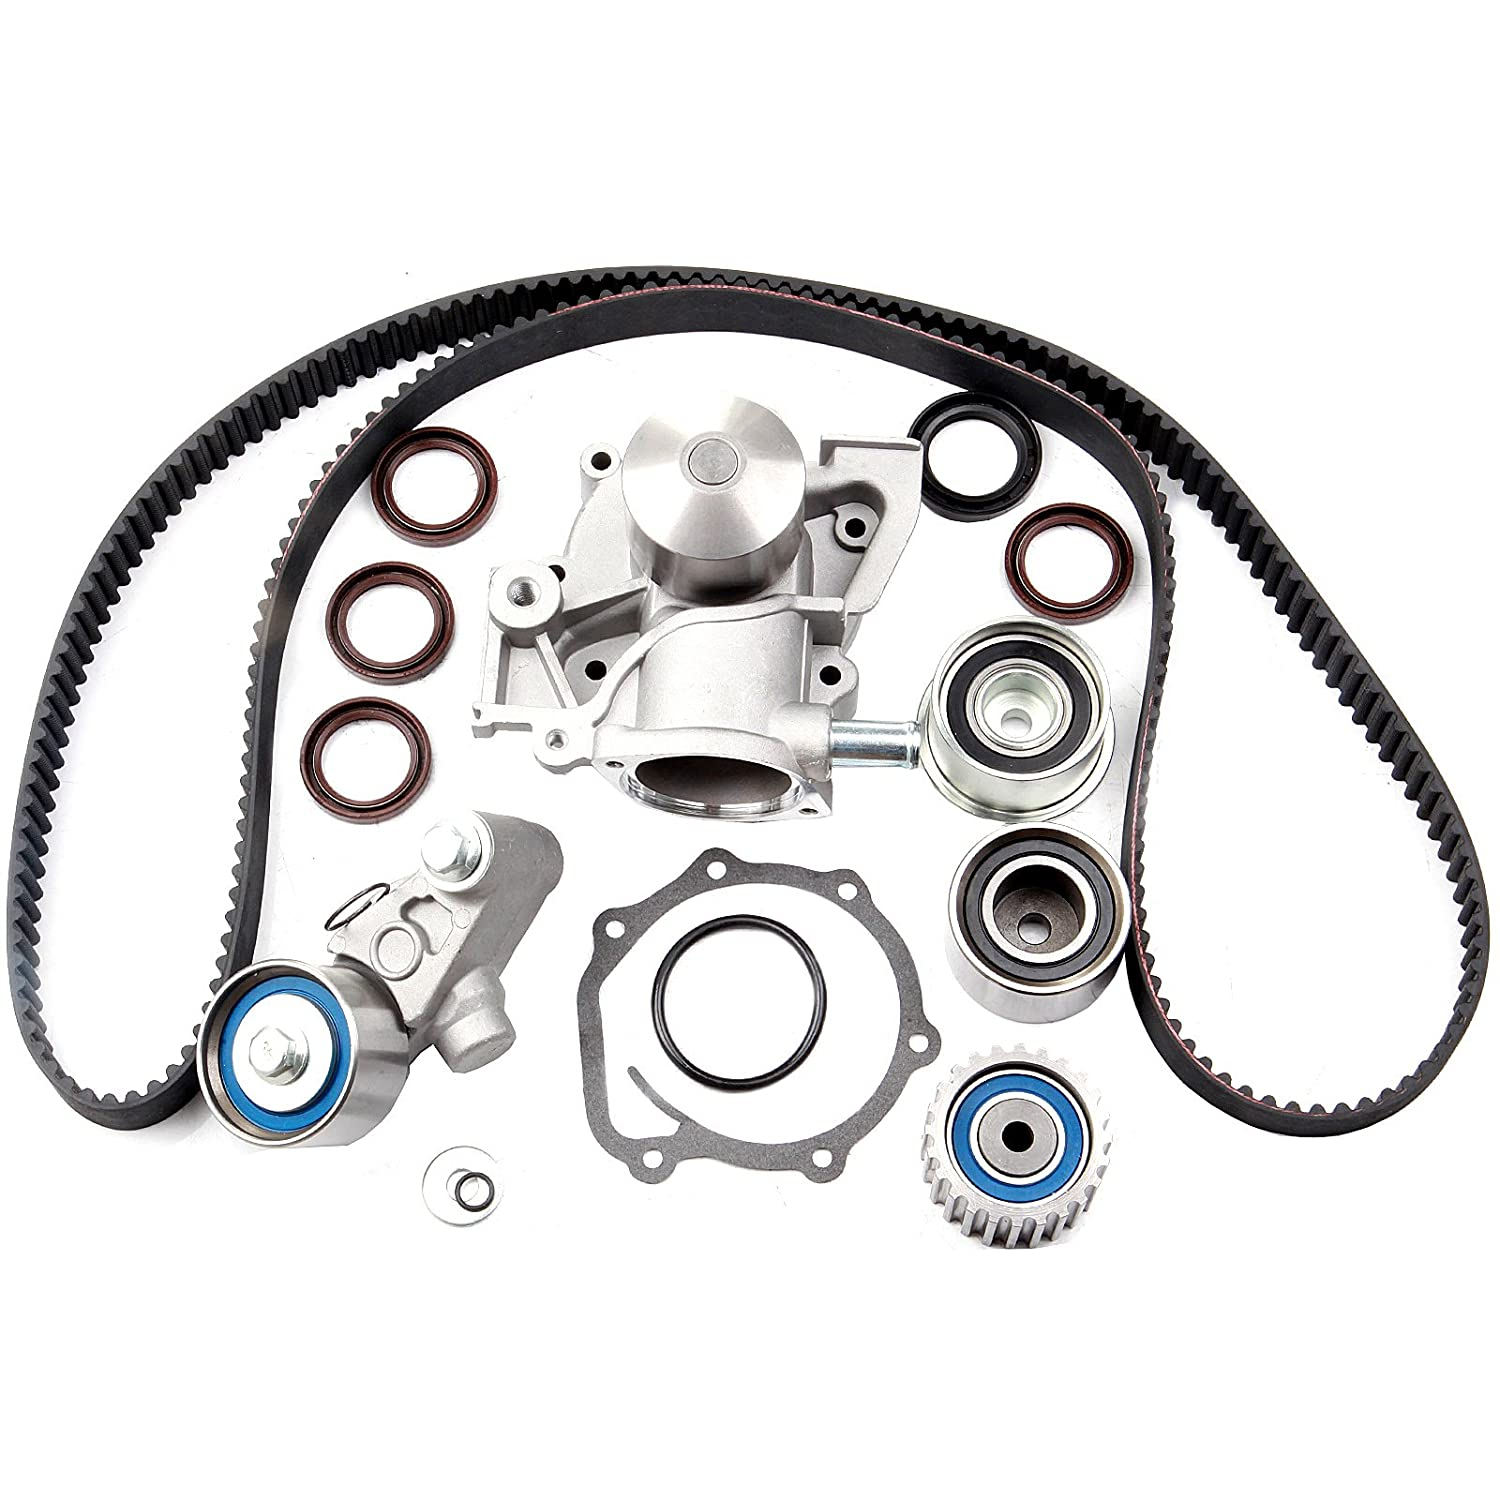 Timing Belt Water Pump Kit Eccpp For Tbk307 Wp9008 2000 Subaru Outback Spark Plug 2006 Legacy Baja 25l Ej25 Automotive